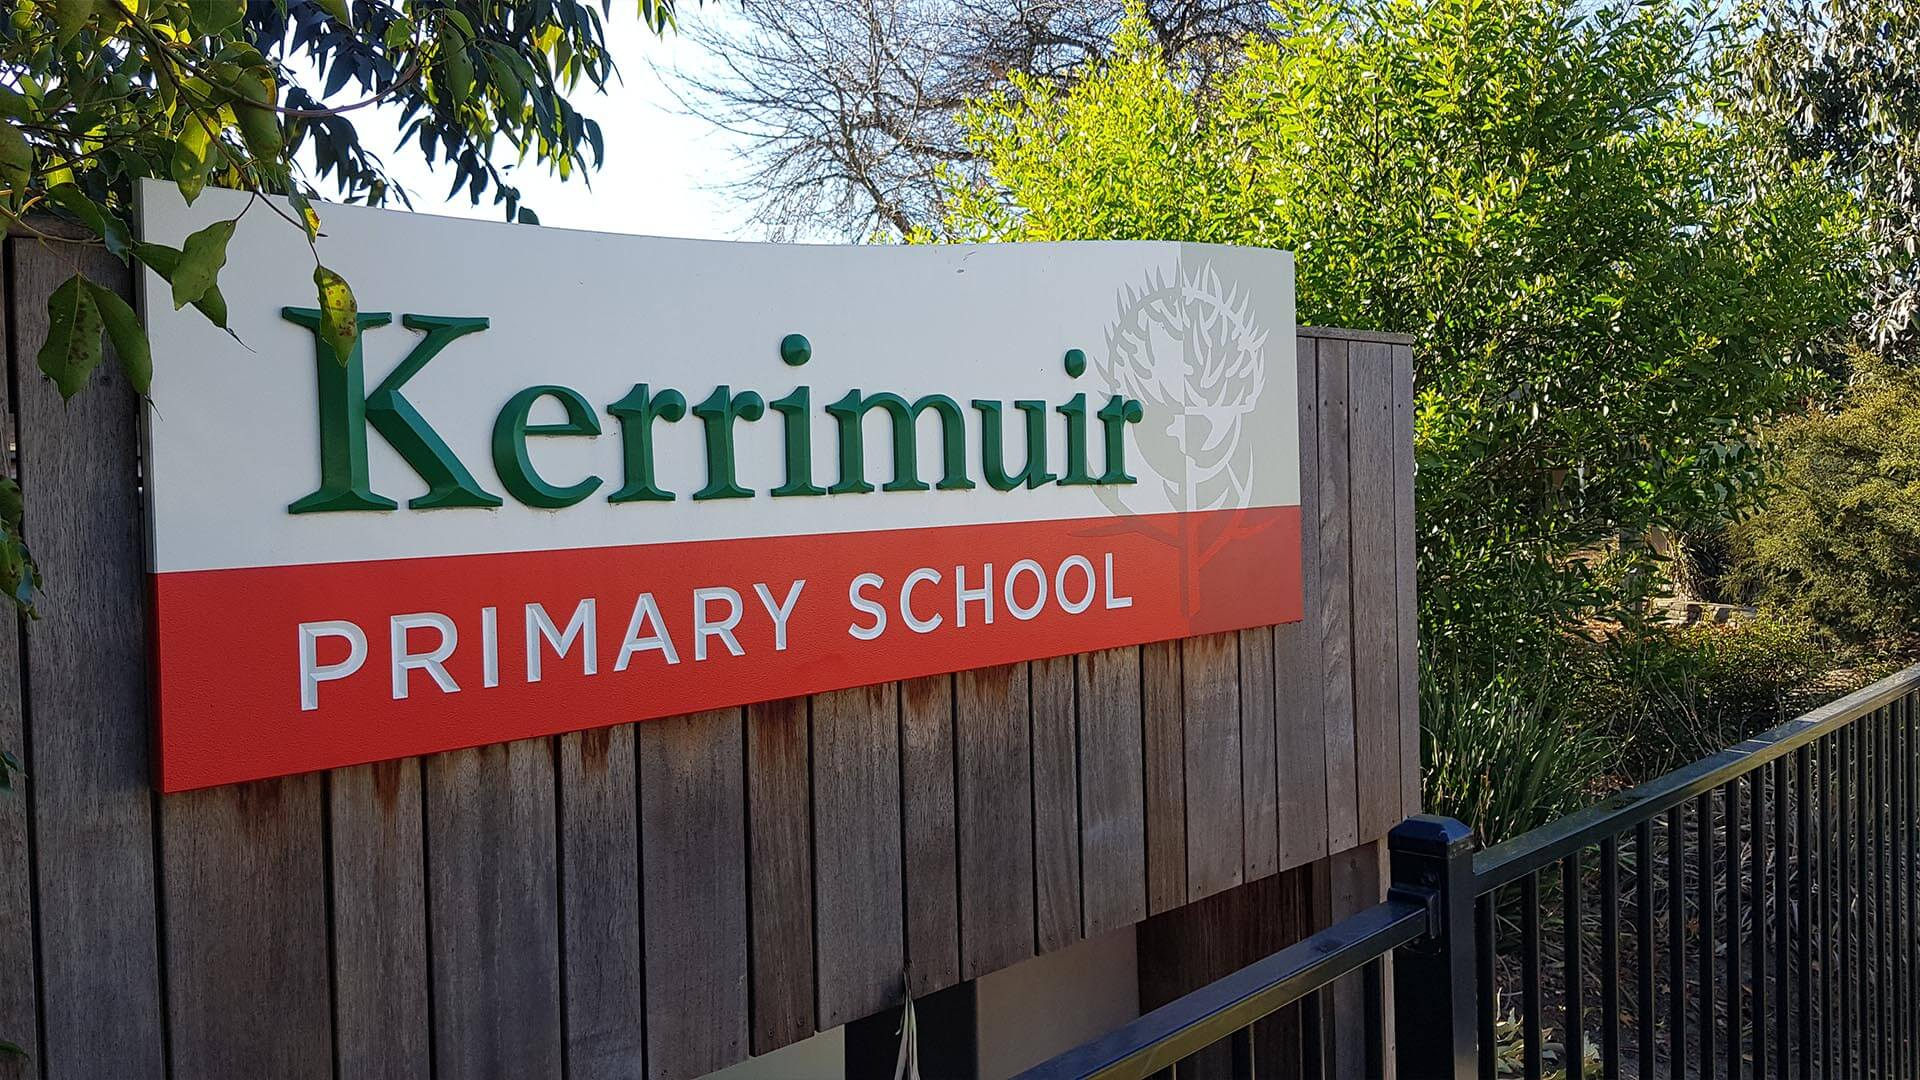 Kerrimuir Sign